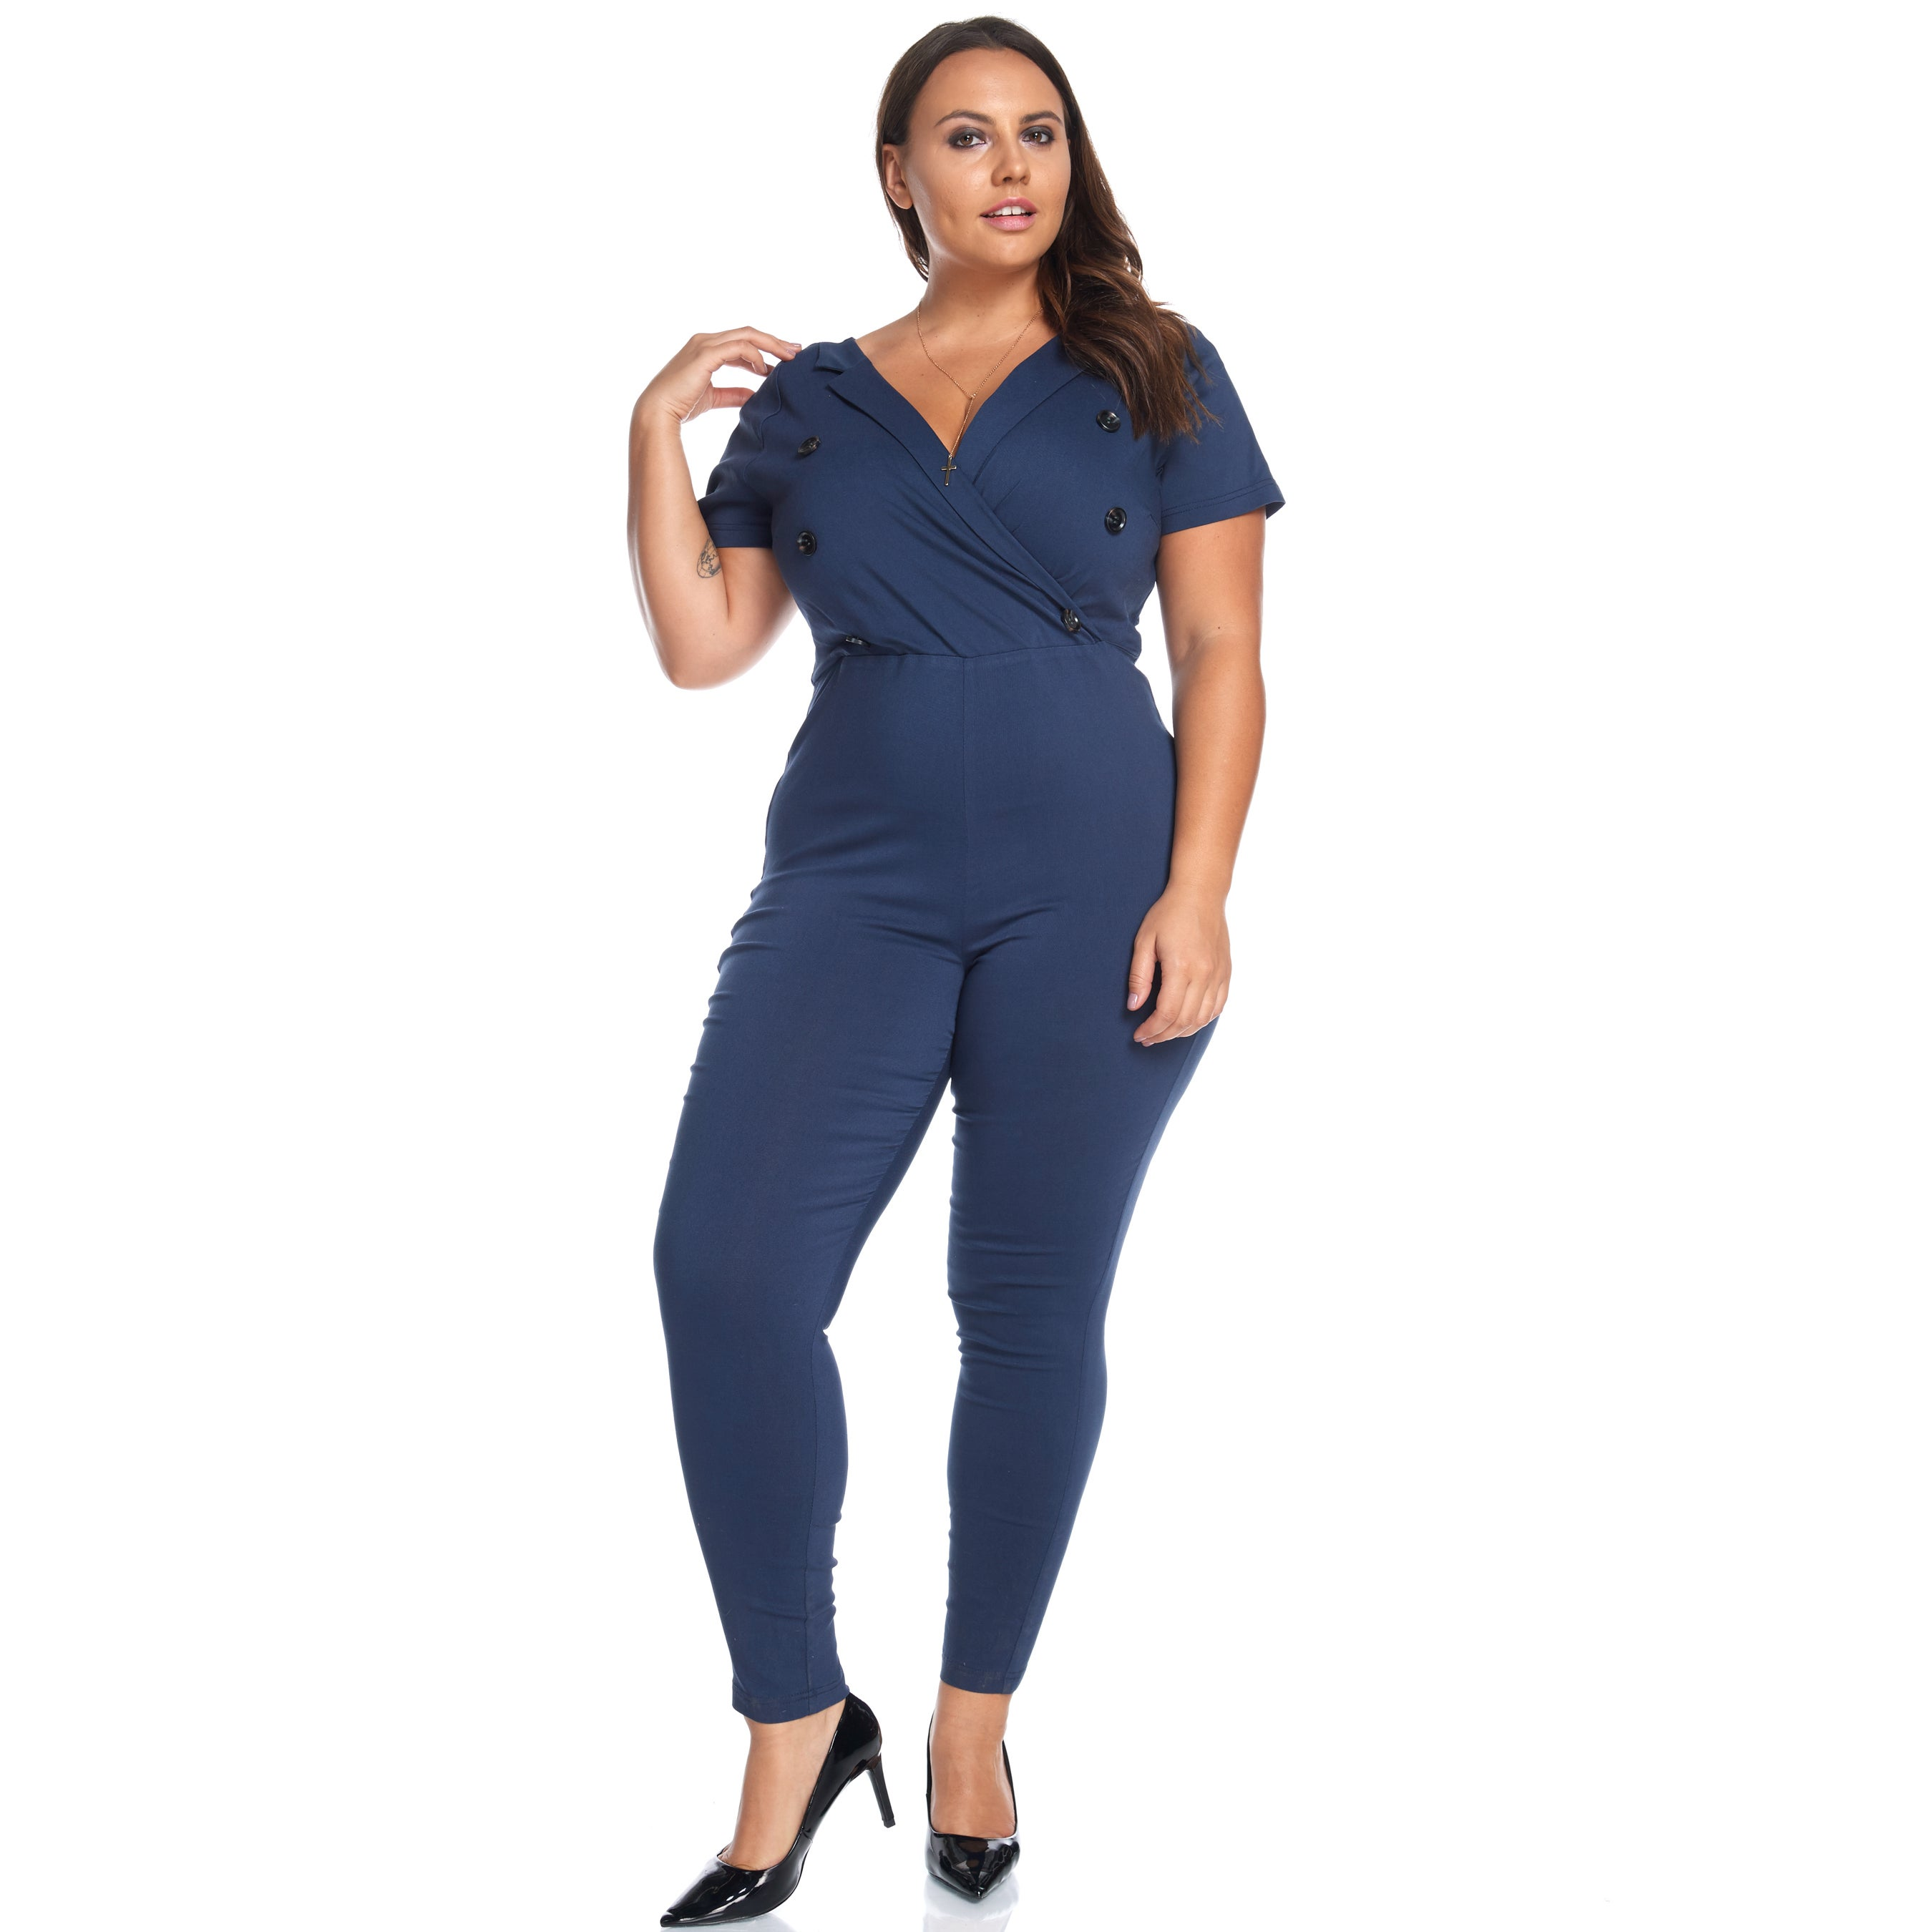 893b61527e4 Shop Hadari Women s Plus Size Slimming V-Neck Navy Button Jumpsuit Playsuit  - Free Shipping On Orders Over  45 - Overstock - 13403761